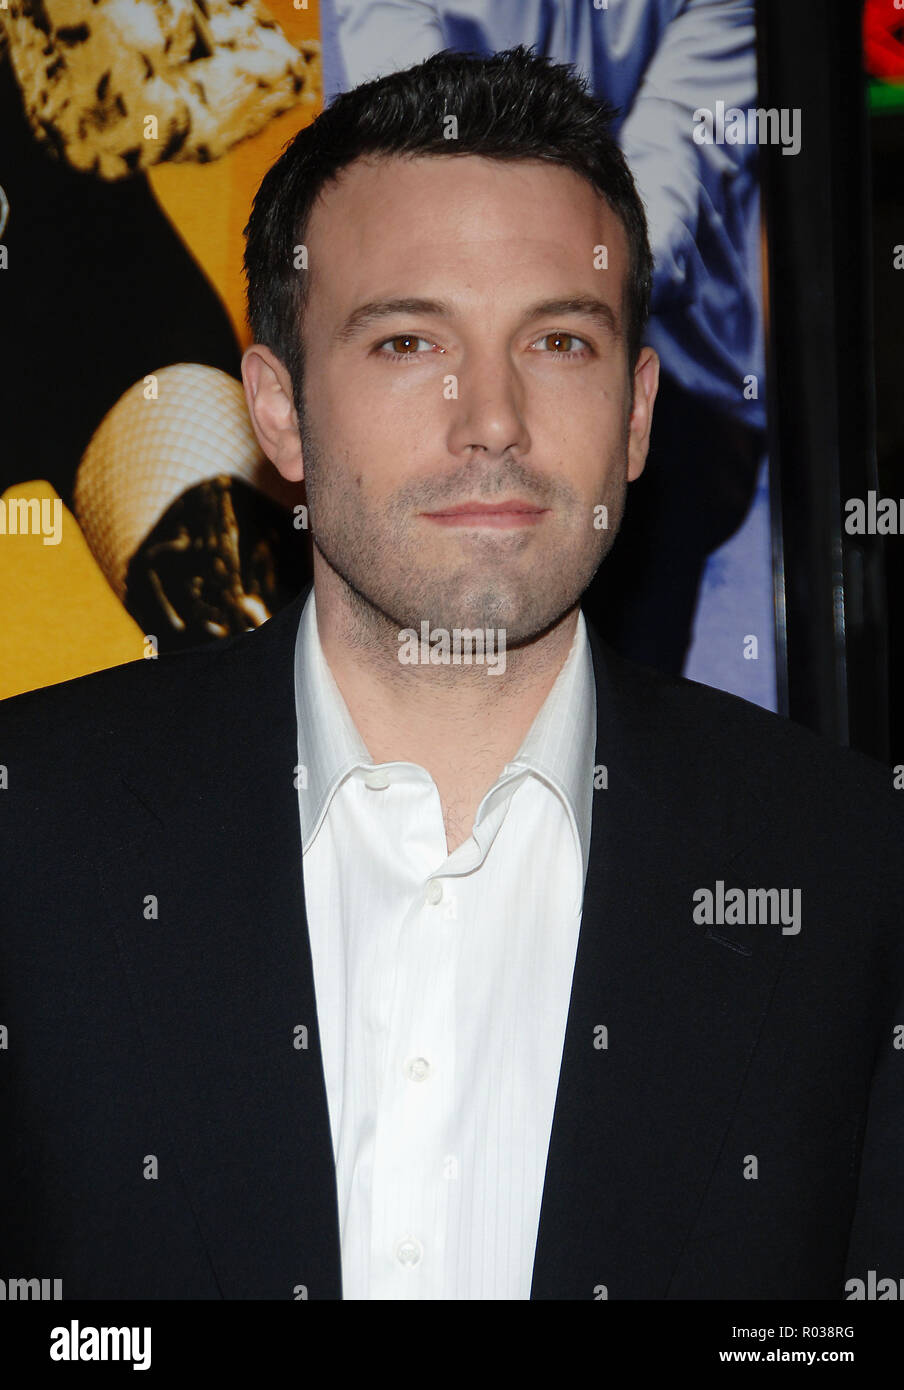 Ben Affleck arriving at the Smokin' Aces at the Chinese Theatre In Los Angeles. January 18, 2007.  eye contact portrait headshot AffleckBen018 Red Carpet Event, Vertical, USA, Film Industry, Celebrities,  Photography, Bestof, Arts Culture and Entertainment, Topix Celebrities fashion /  Vertical, Best of, Event in Hollywood Life - California,  Red Carpet and backstage, USA, Film Industry, Celebrities,  movie celebrities, TV celebrities, Music celebrities, Photography, Bestof, Arts Culture and Entertainment,  Topix, headshot, vertical, one person,, from the year , 2007, inquiry tsuni@Gamma-USA.c - Stock Image